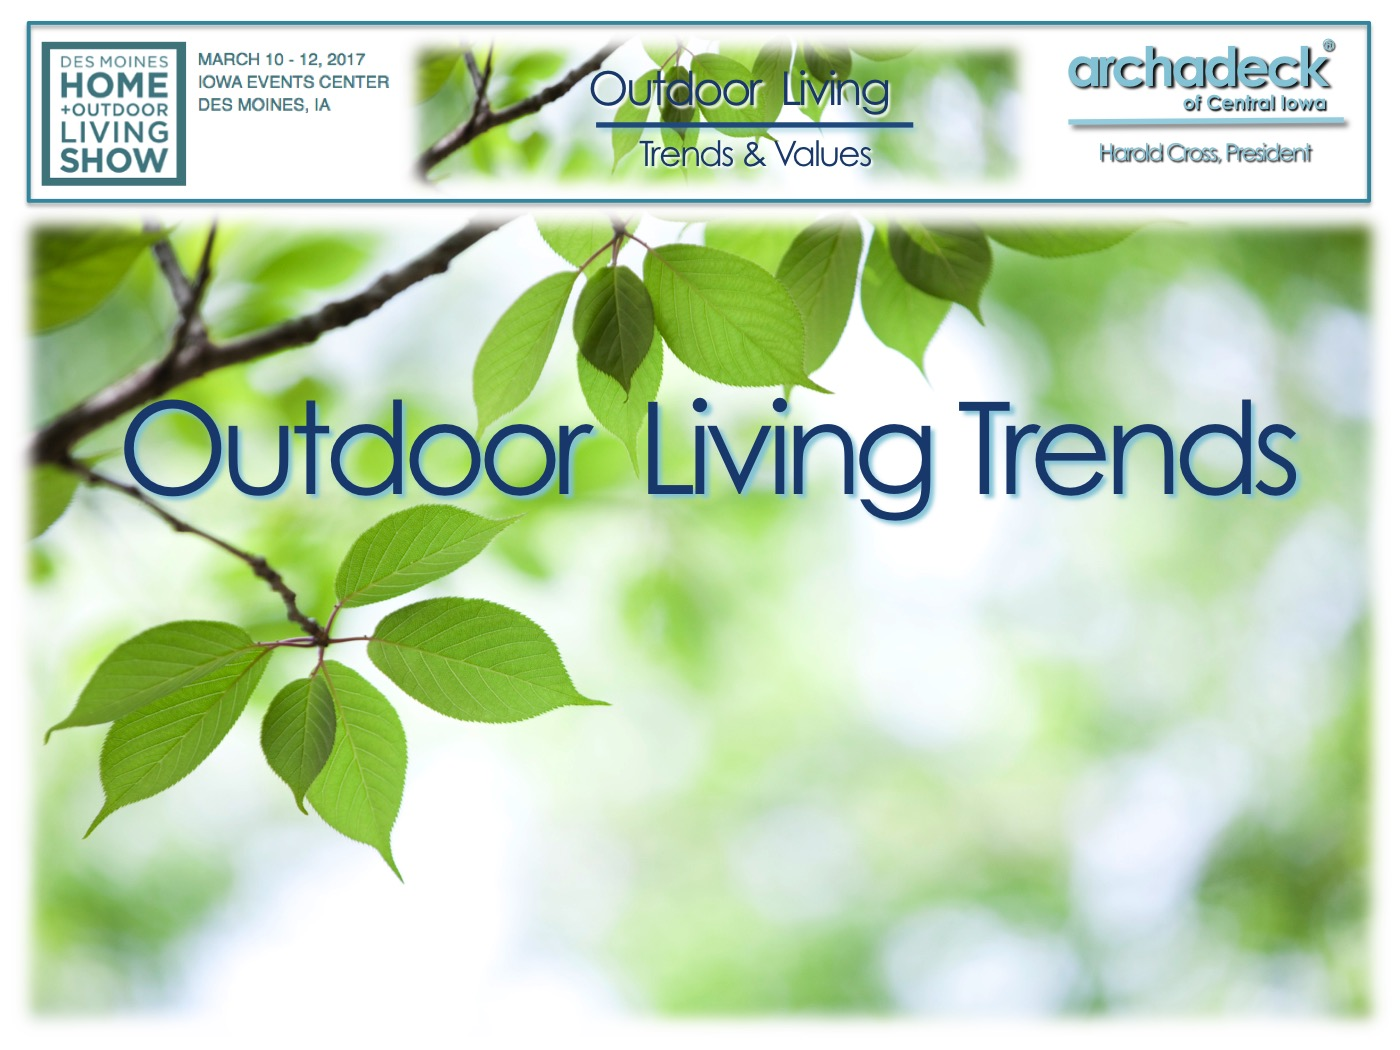 Archadeck - 2017 Home+Outdoor Living Show Presentation - Outdoor Living Trends  Thumbnail